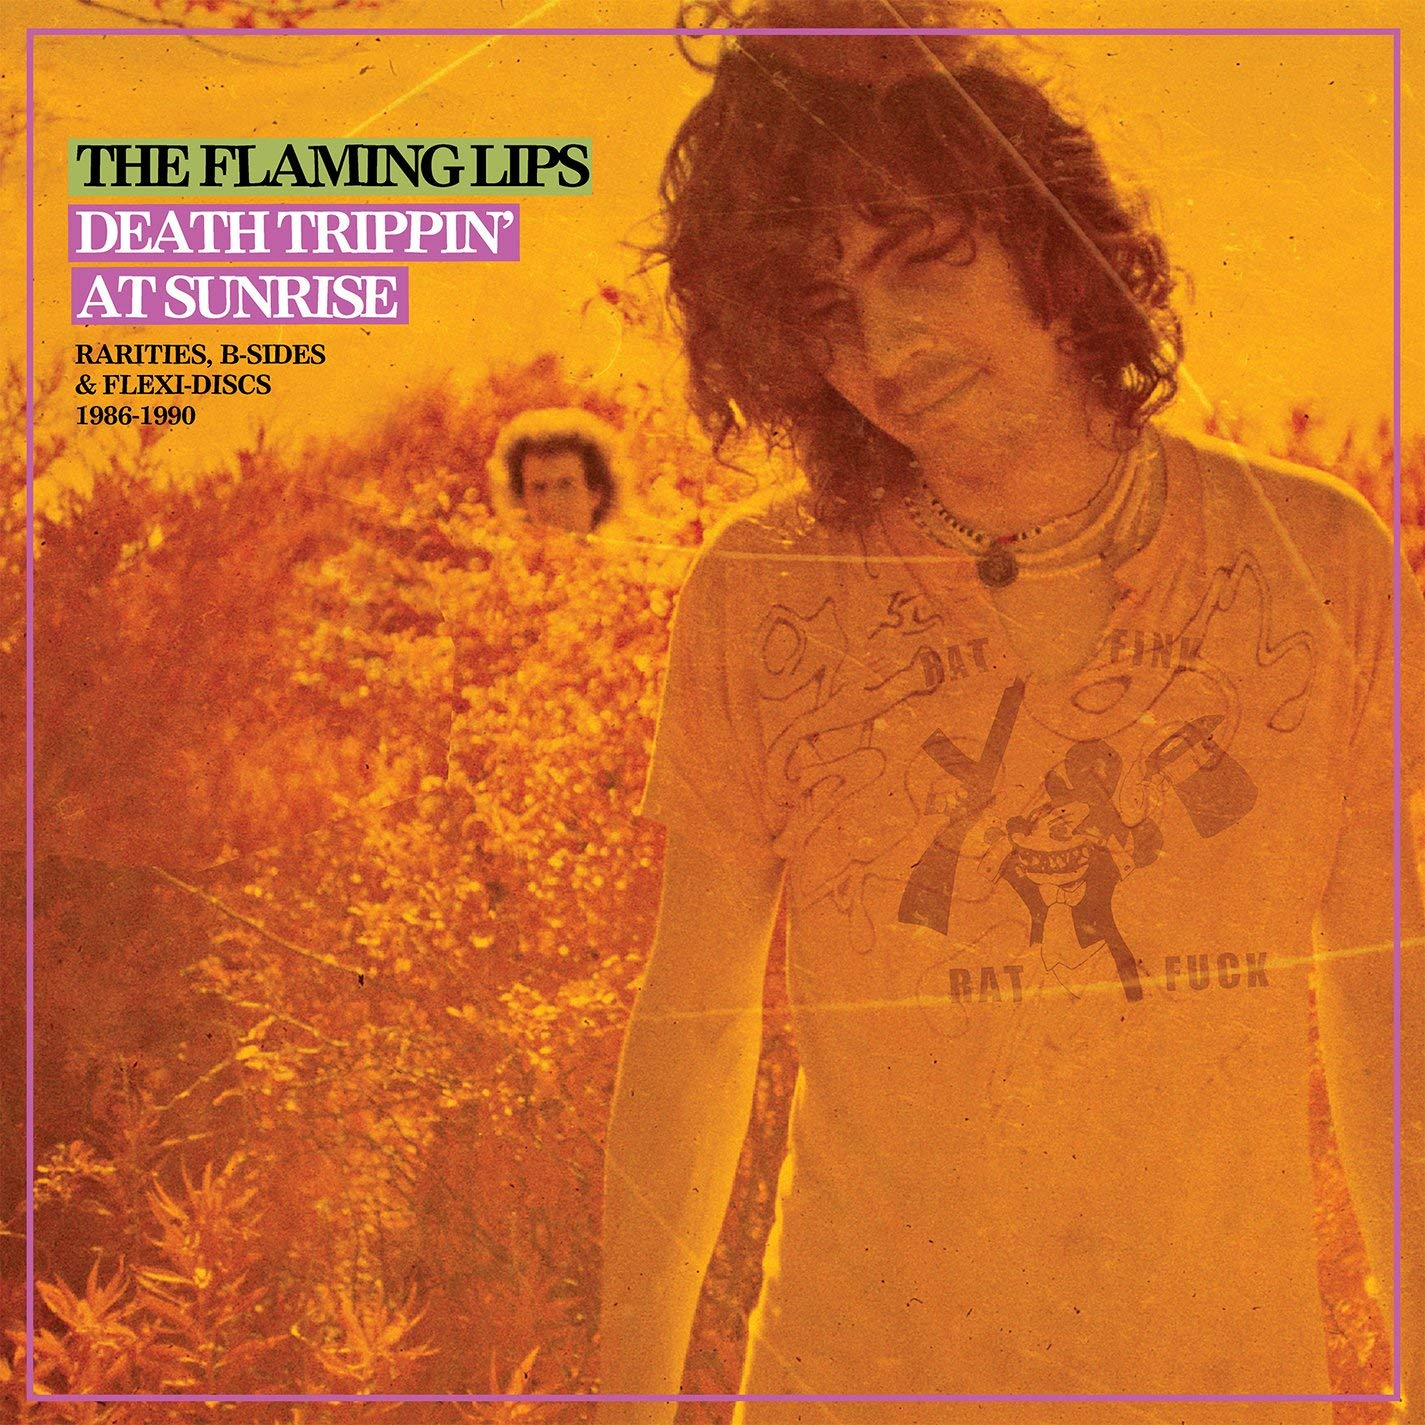 The Flaming Lips The Flaming Lips. Death Trippin' At Sunrise. Rarities, B-Sides & Flexi-Discs 1986-1990 (2 LP) the flaming stars the flaming stars named and shamed